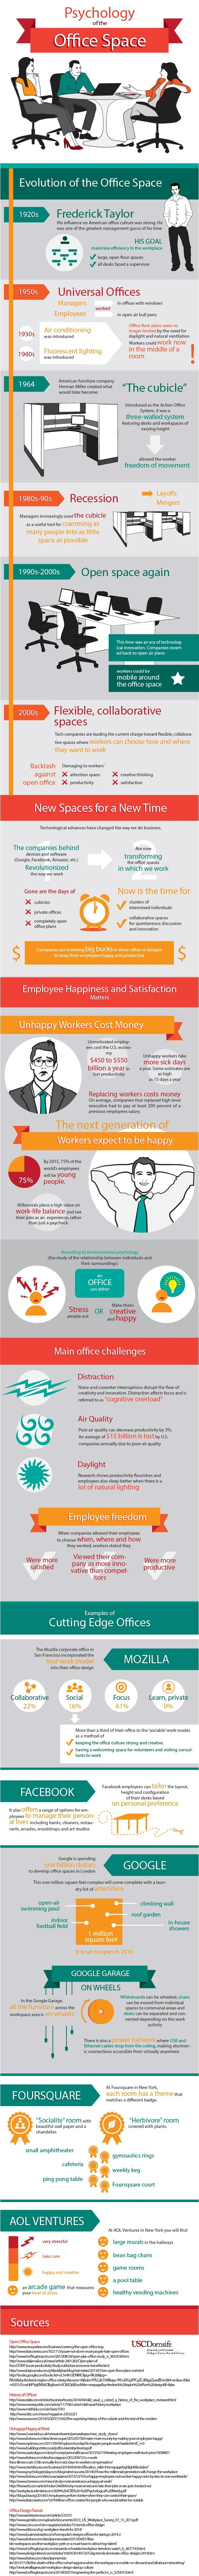 The evolution of office space has gone through many different changes through the past century. This infographic provided by the University of Southern California Applied Psychology Department explains the evolution of office space.